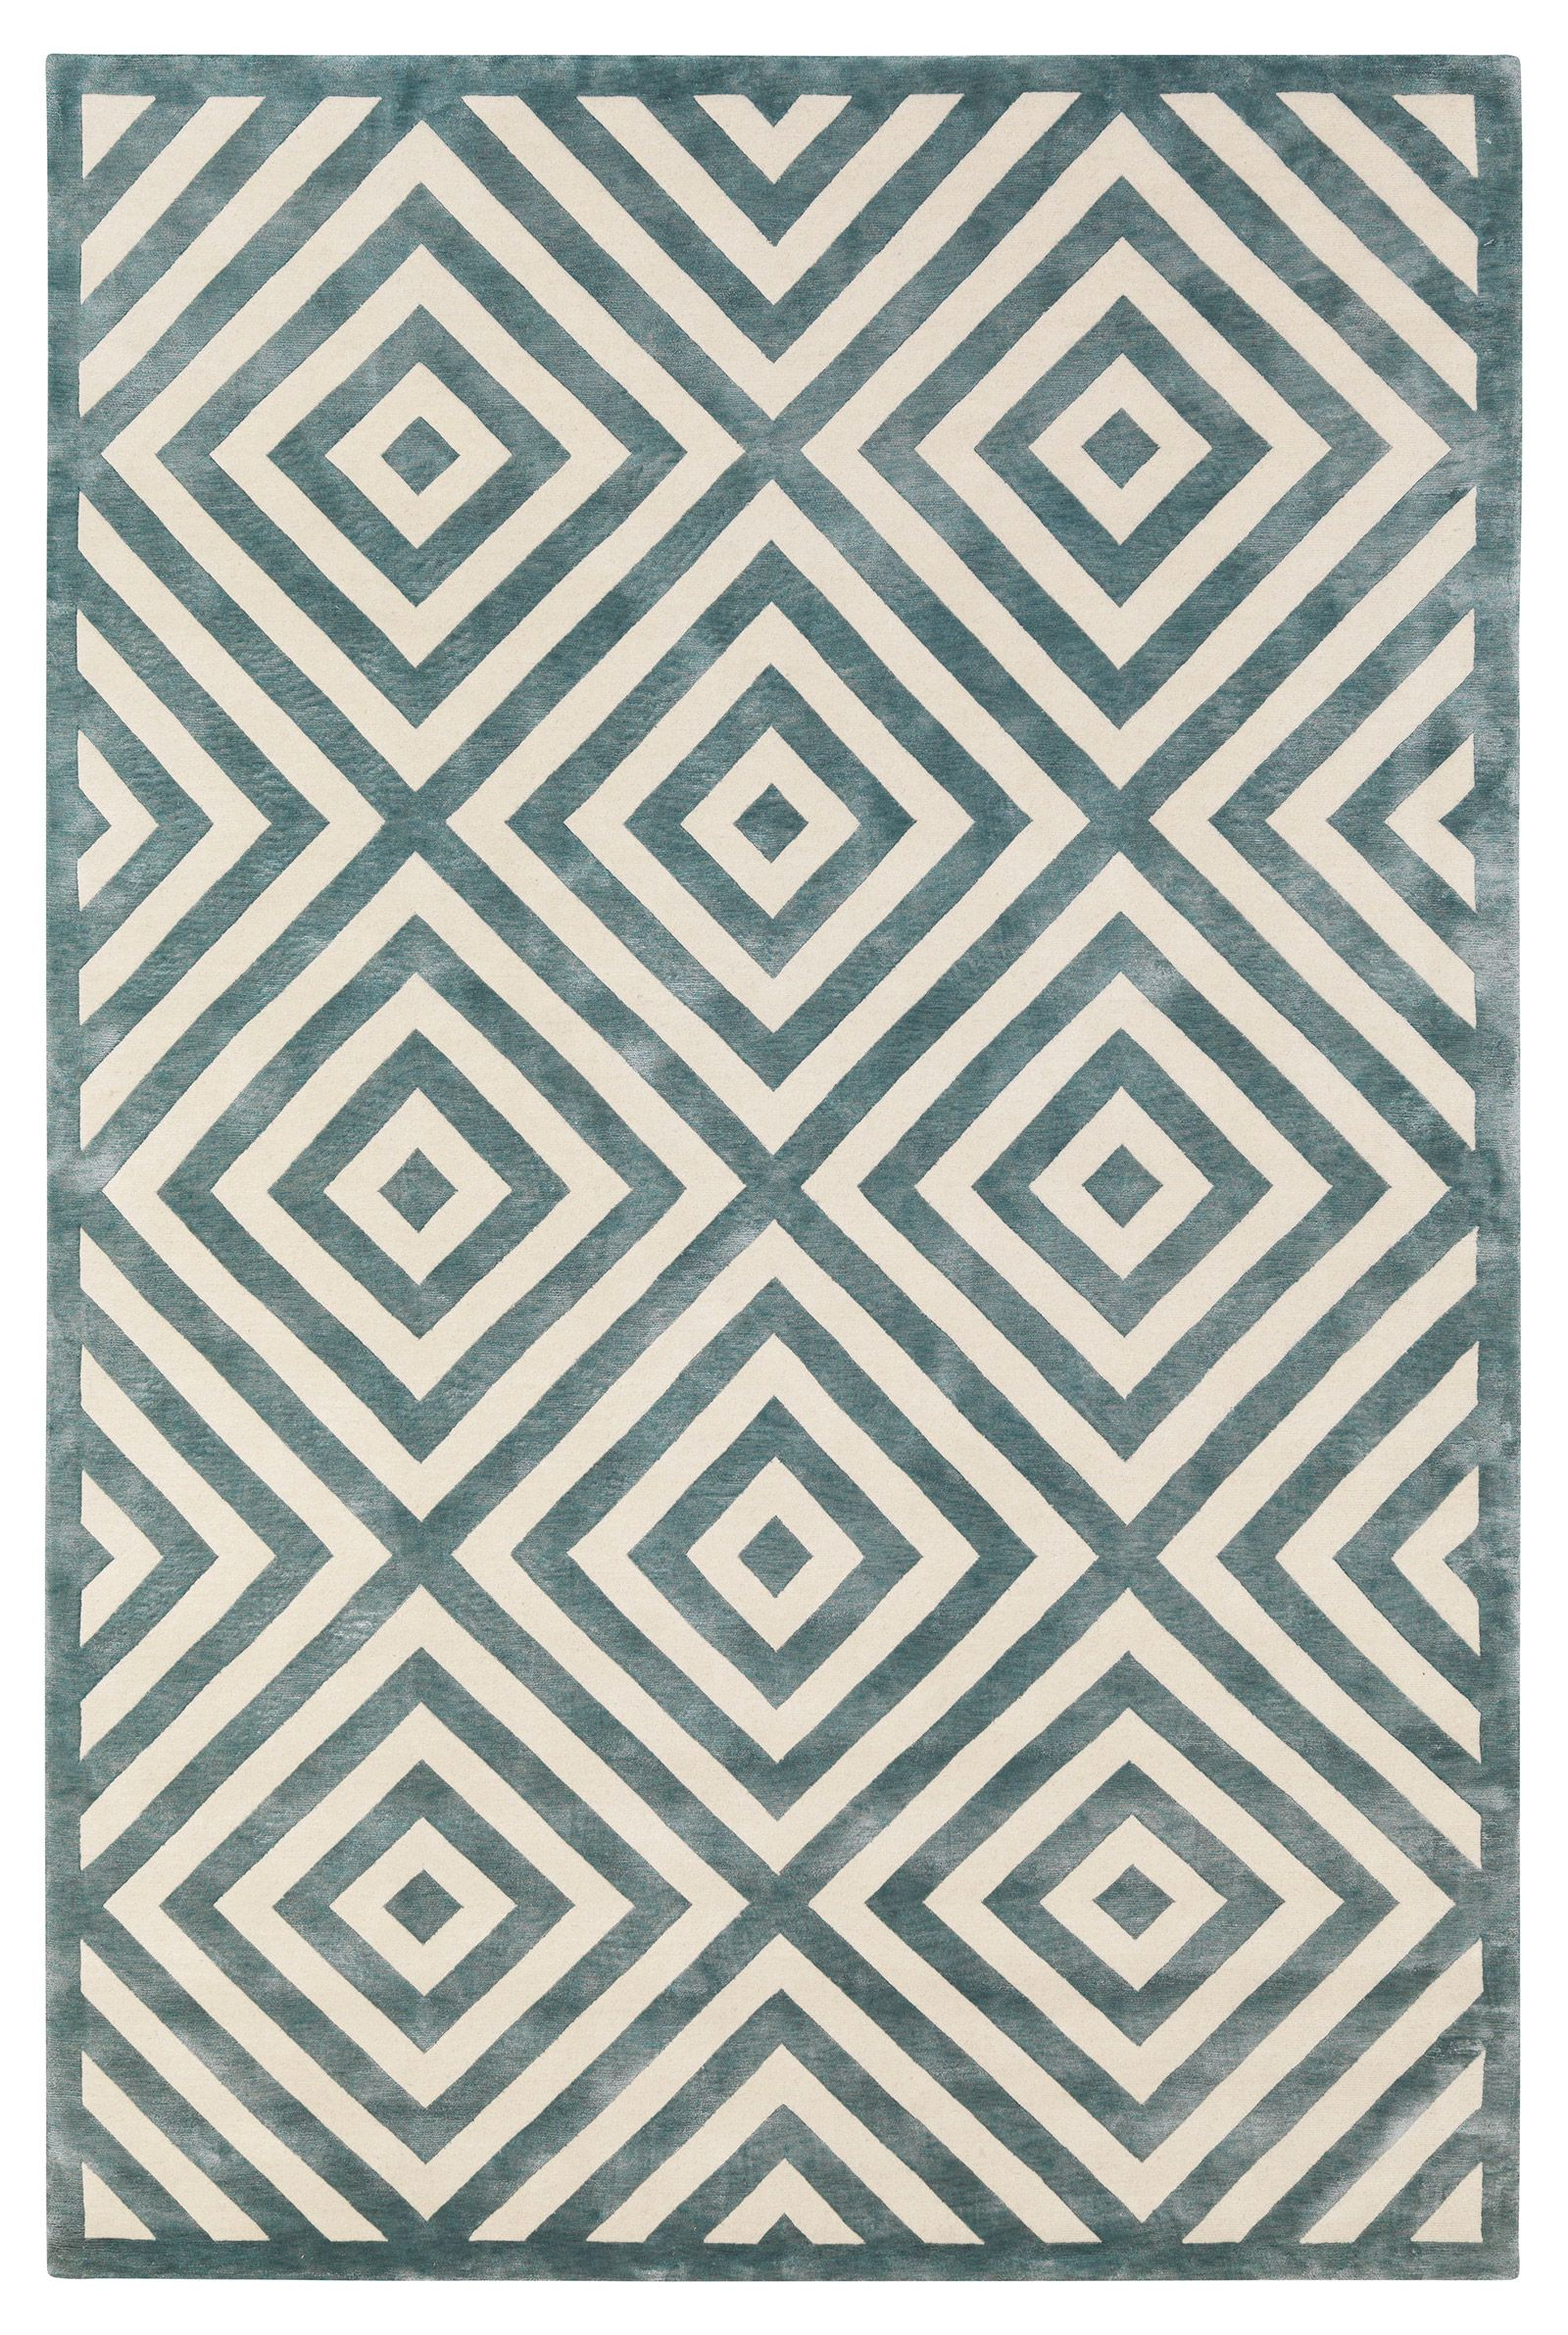 Calypso by suzanne sharp wool and silk contemporary hand knotted luxury modern rugs the rug company the rug company sisterspd